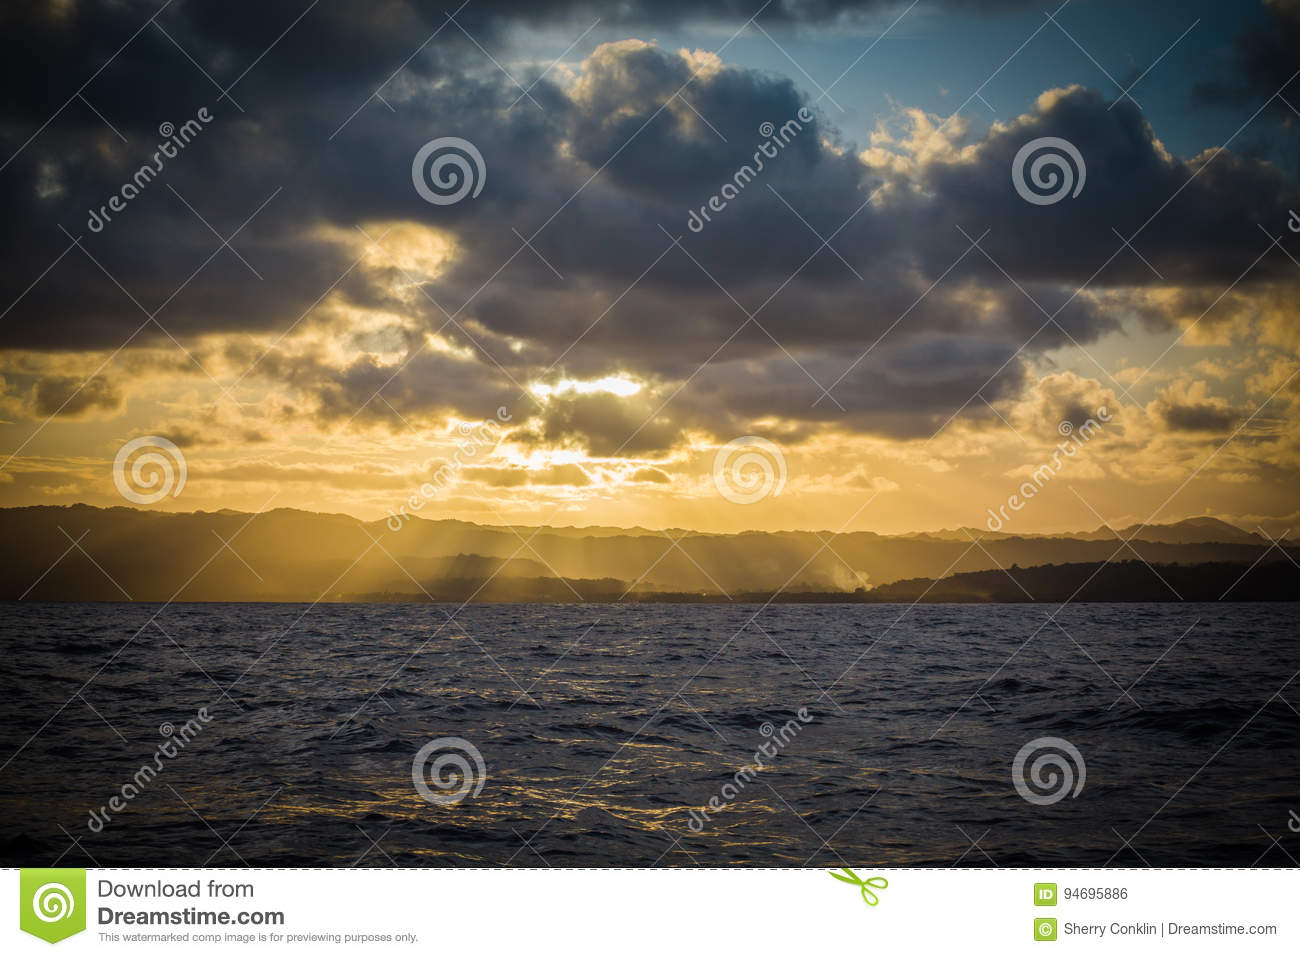 Sun Set over island mountains from the ocean